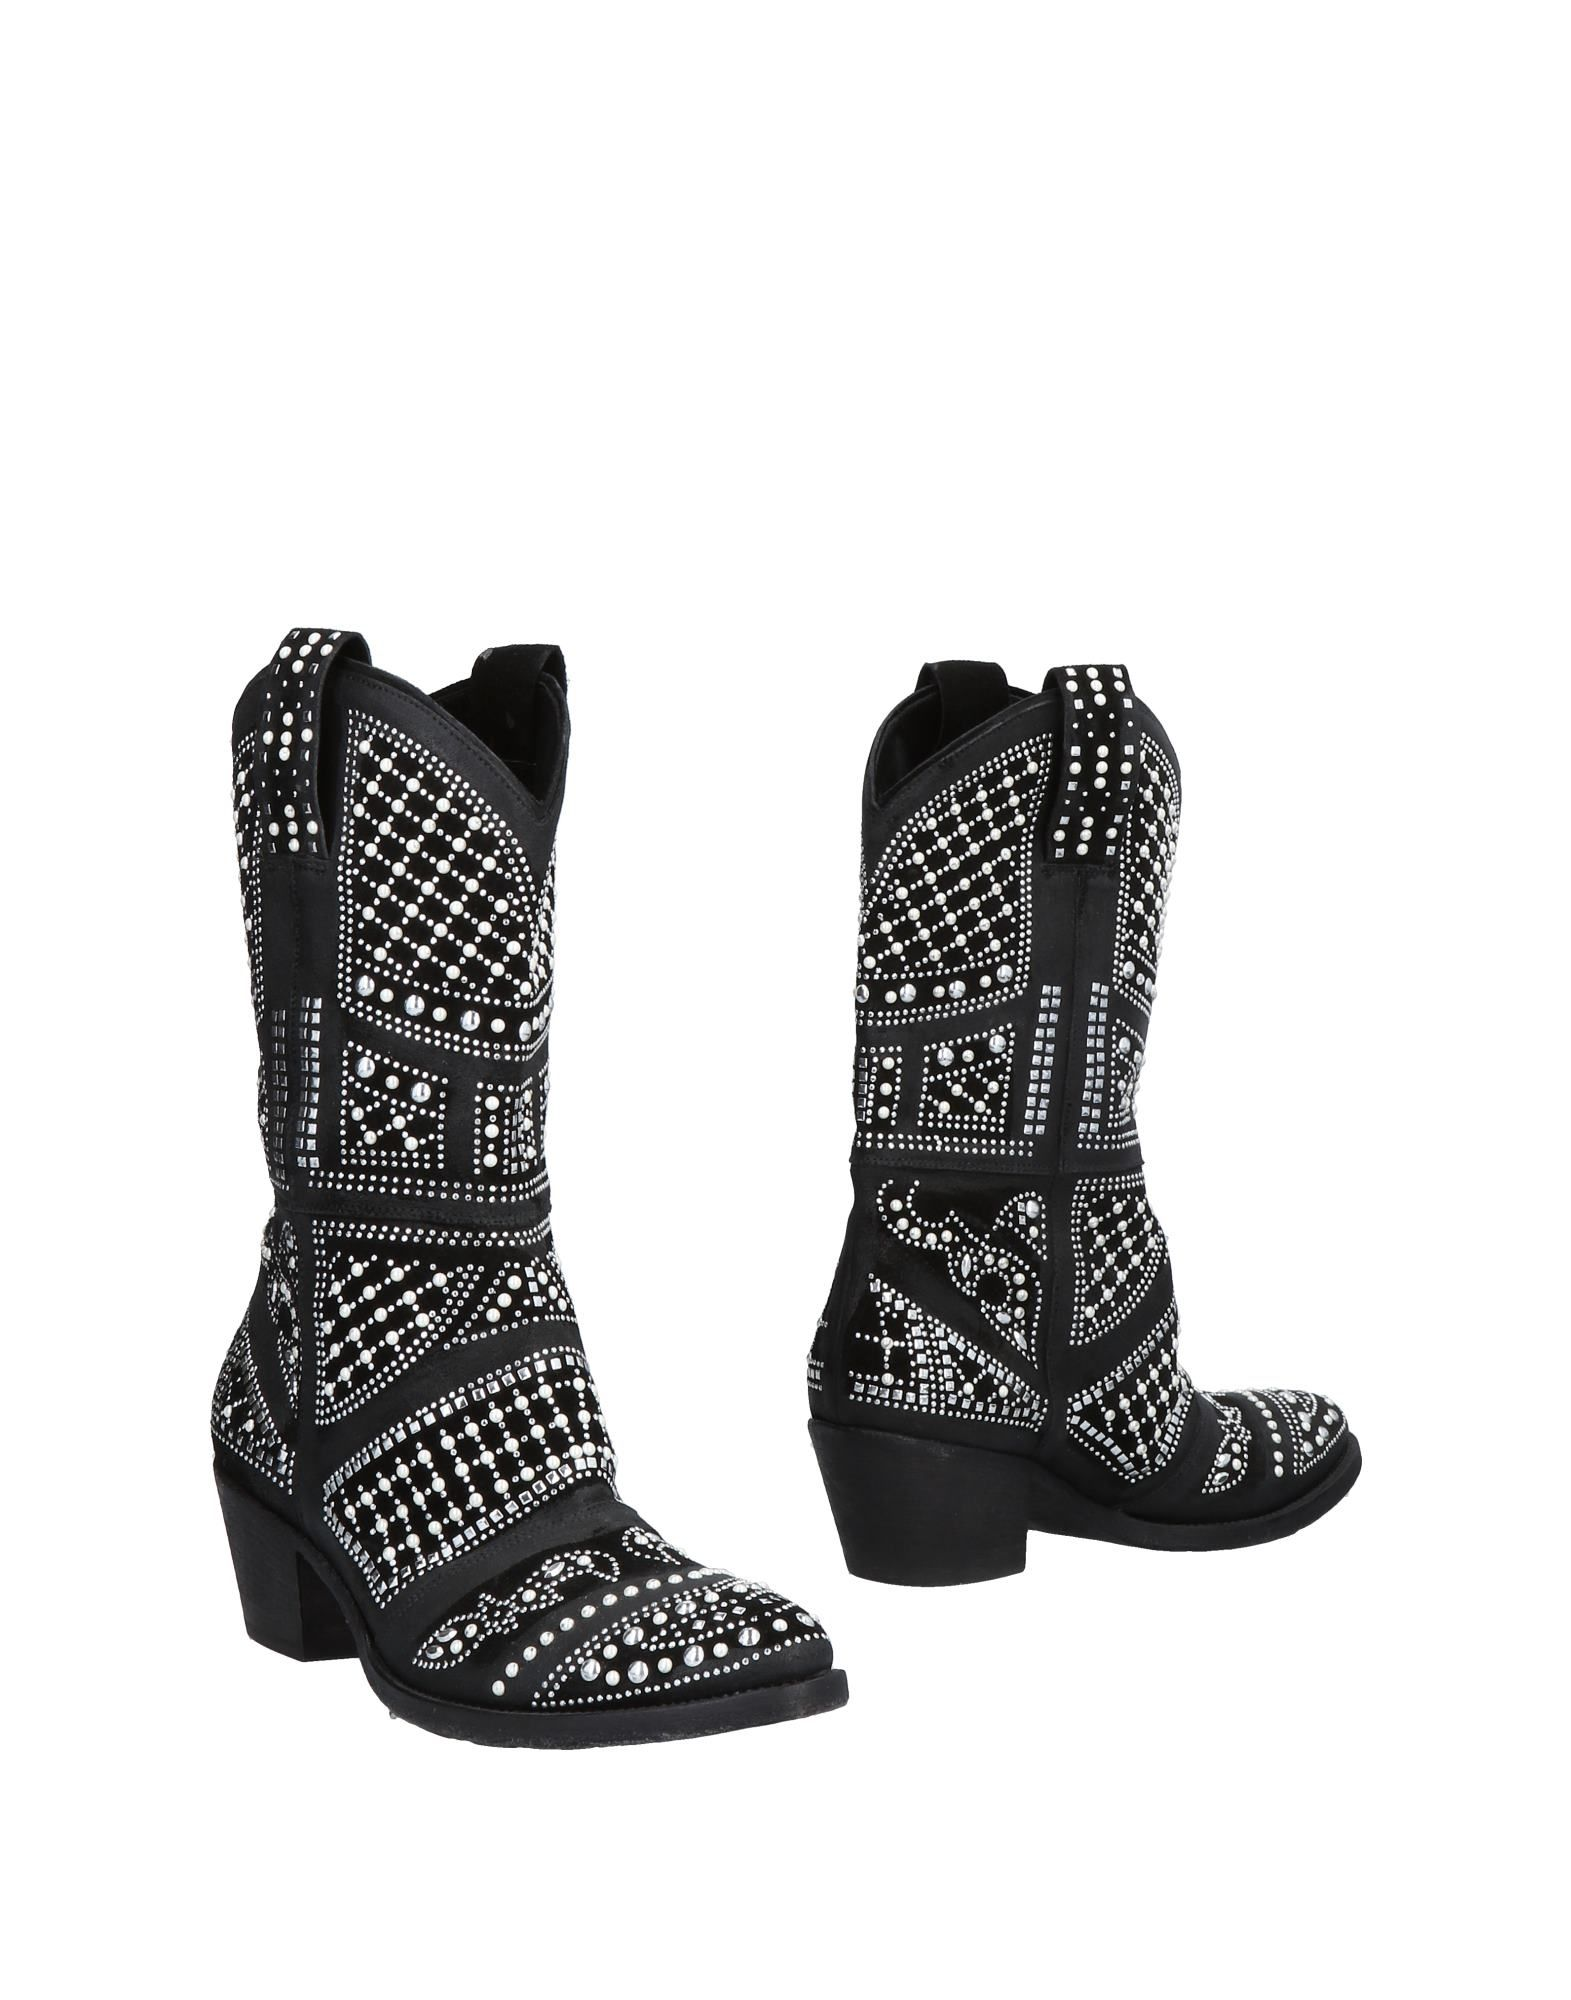 Bruschi Ankle Boot - Women Bruschi Ankle Ankle Ankle Boots online on  United Kingdom - 11483183FW 83ff80